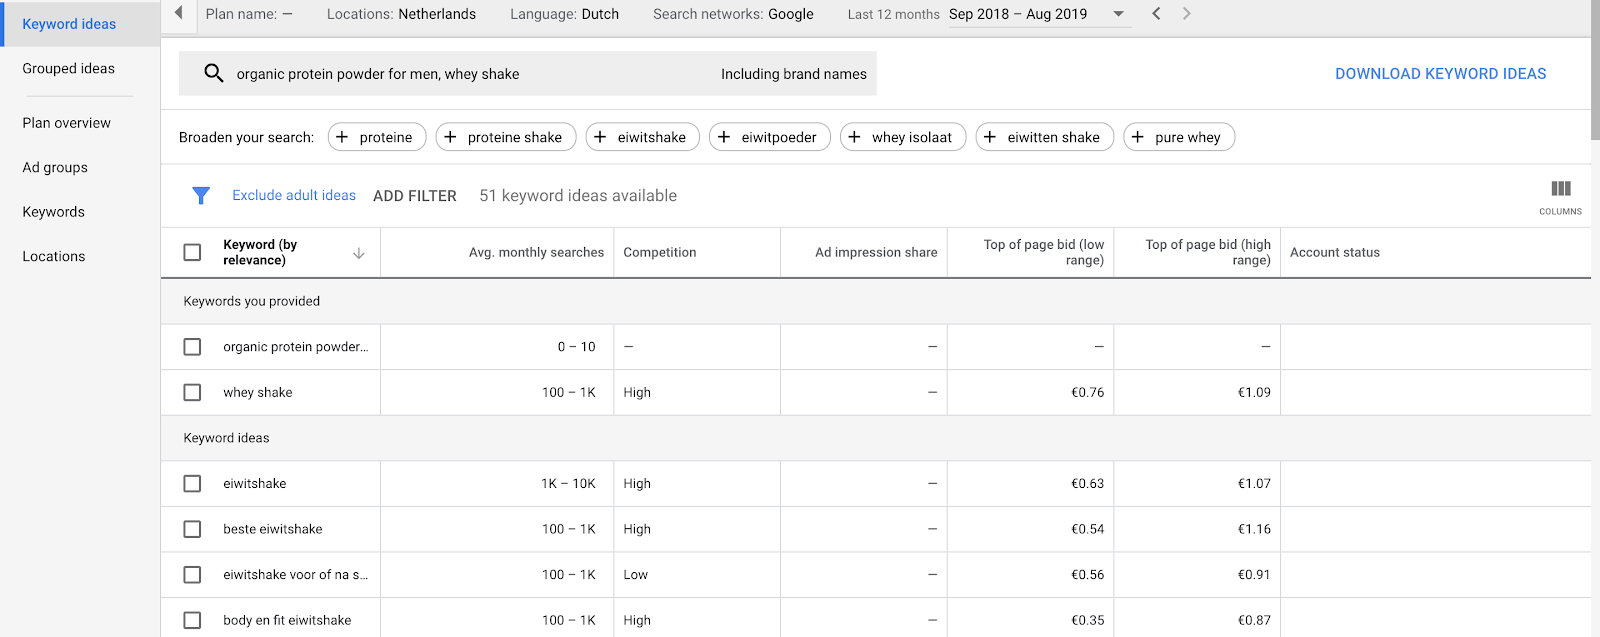 Google keywords Research Planner Tool to find out the best keywords based on CPC. Target low CPC and high search volume keywords.